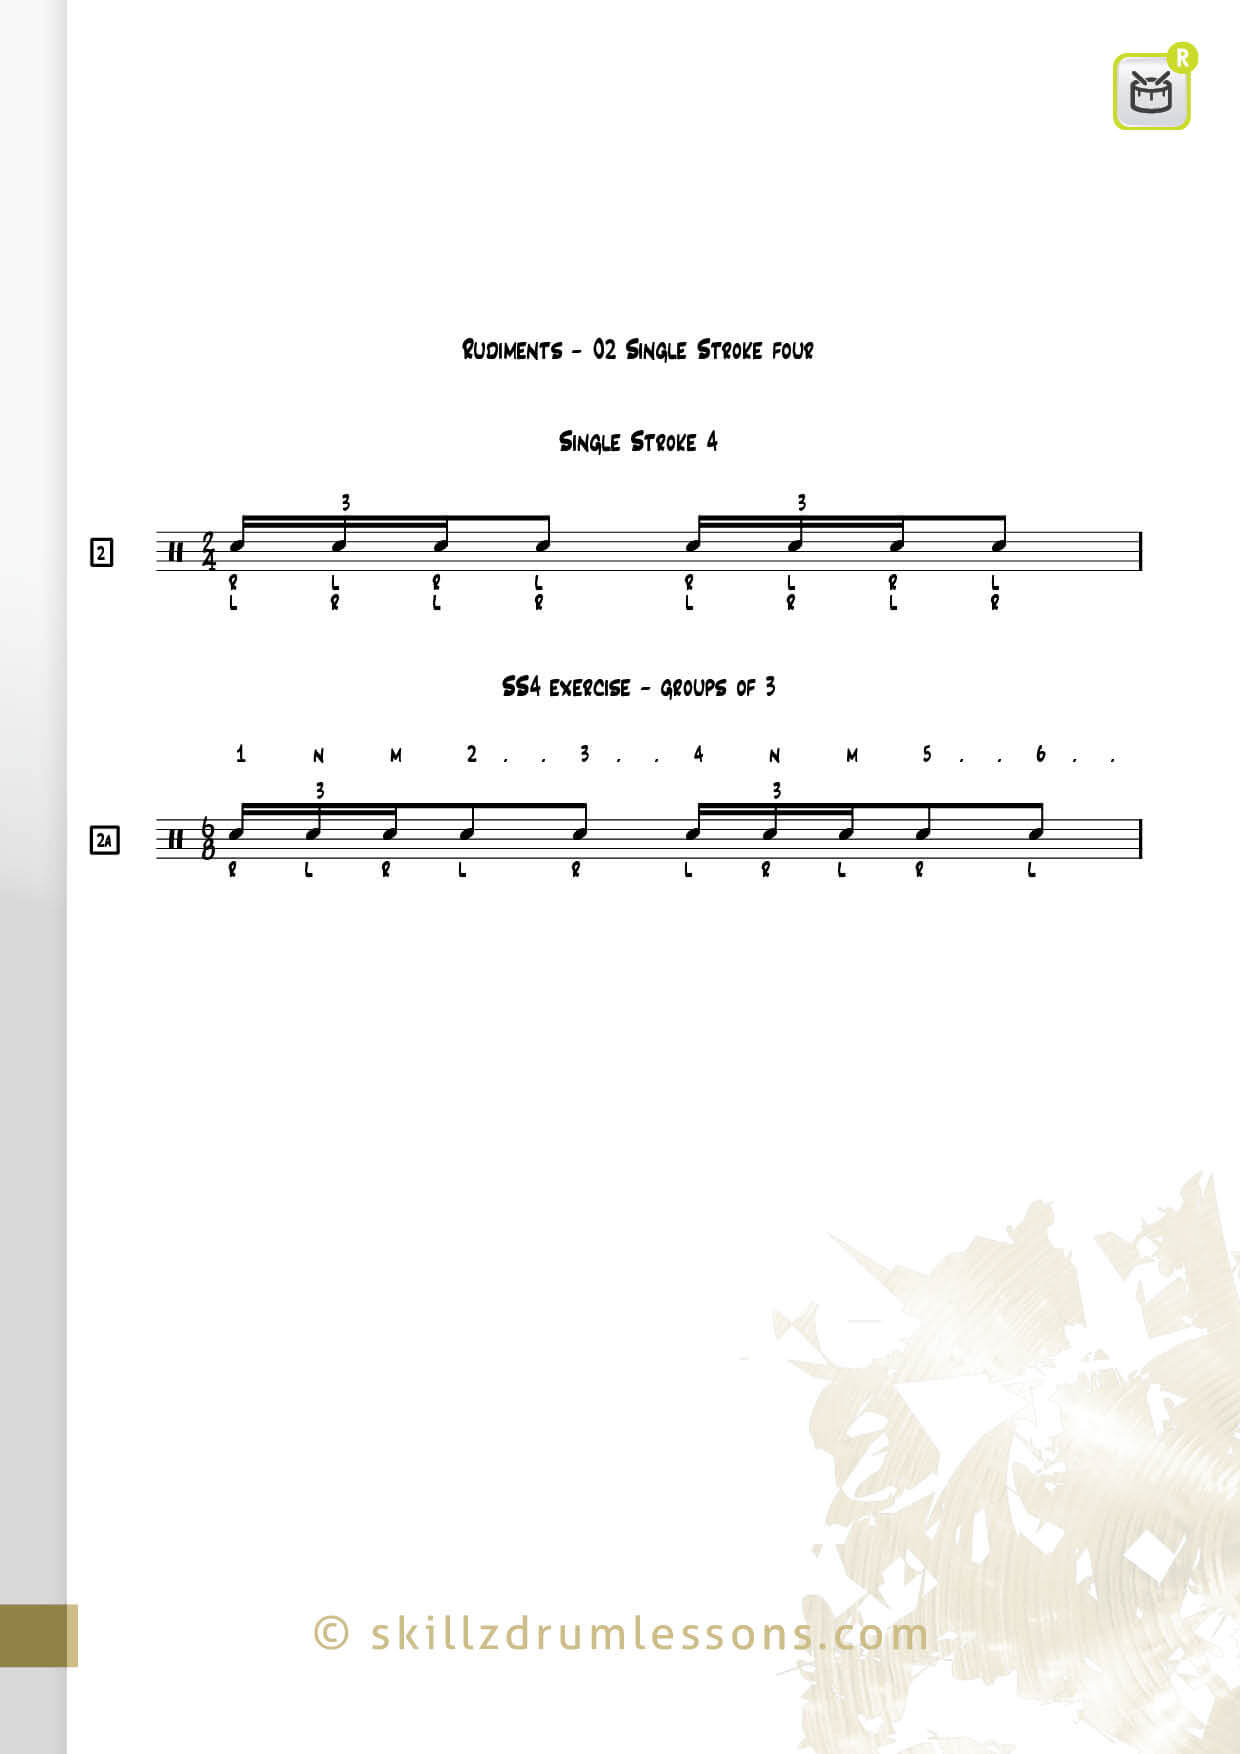 This is an image of the Official 40 Essential P.A.S. Rudiments #2 The Single Stroke Four by Skillz Drum Lessons